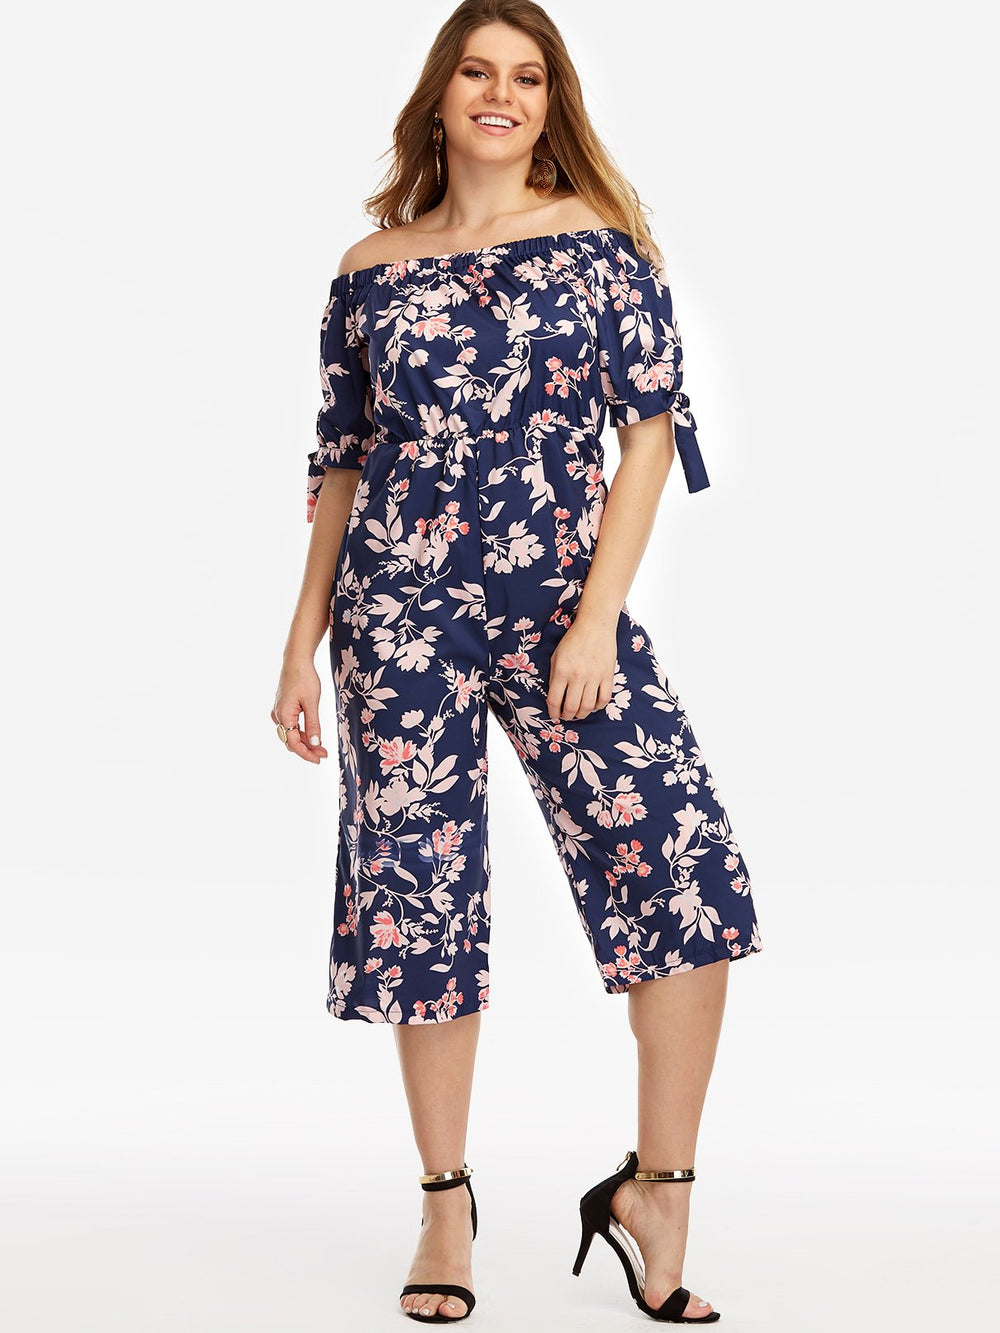 Off The Shoulder Floral Print Half Sleeve Navy Plus Size Bottoms